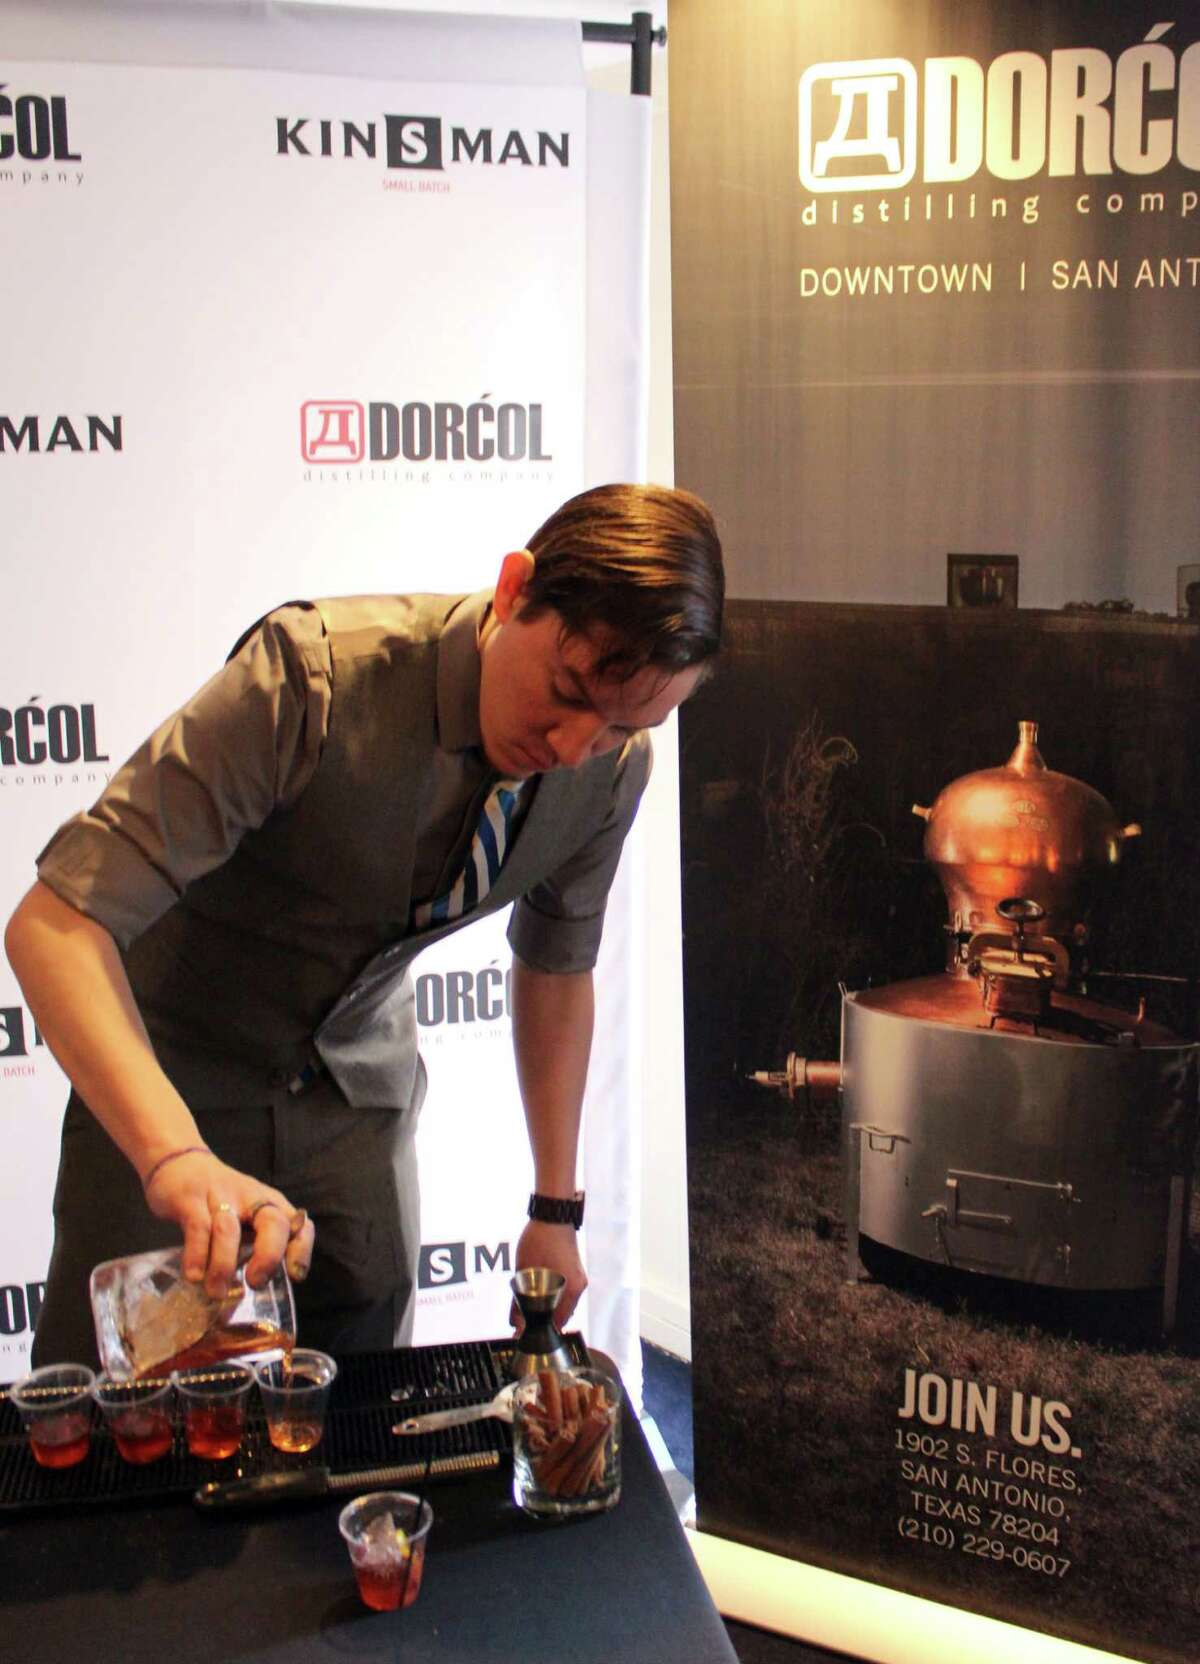 A bartender for Dorcol Distilling Co. makes drinks during the San Antonio Cocktail Conference.